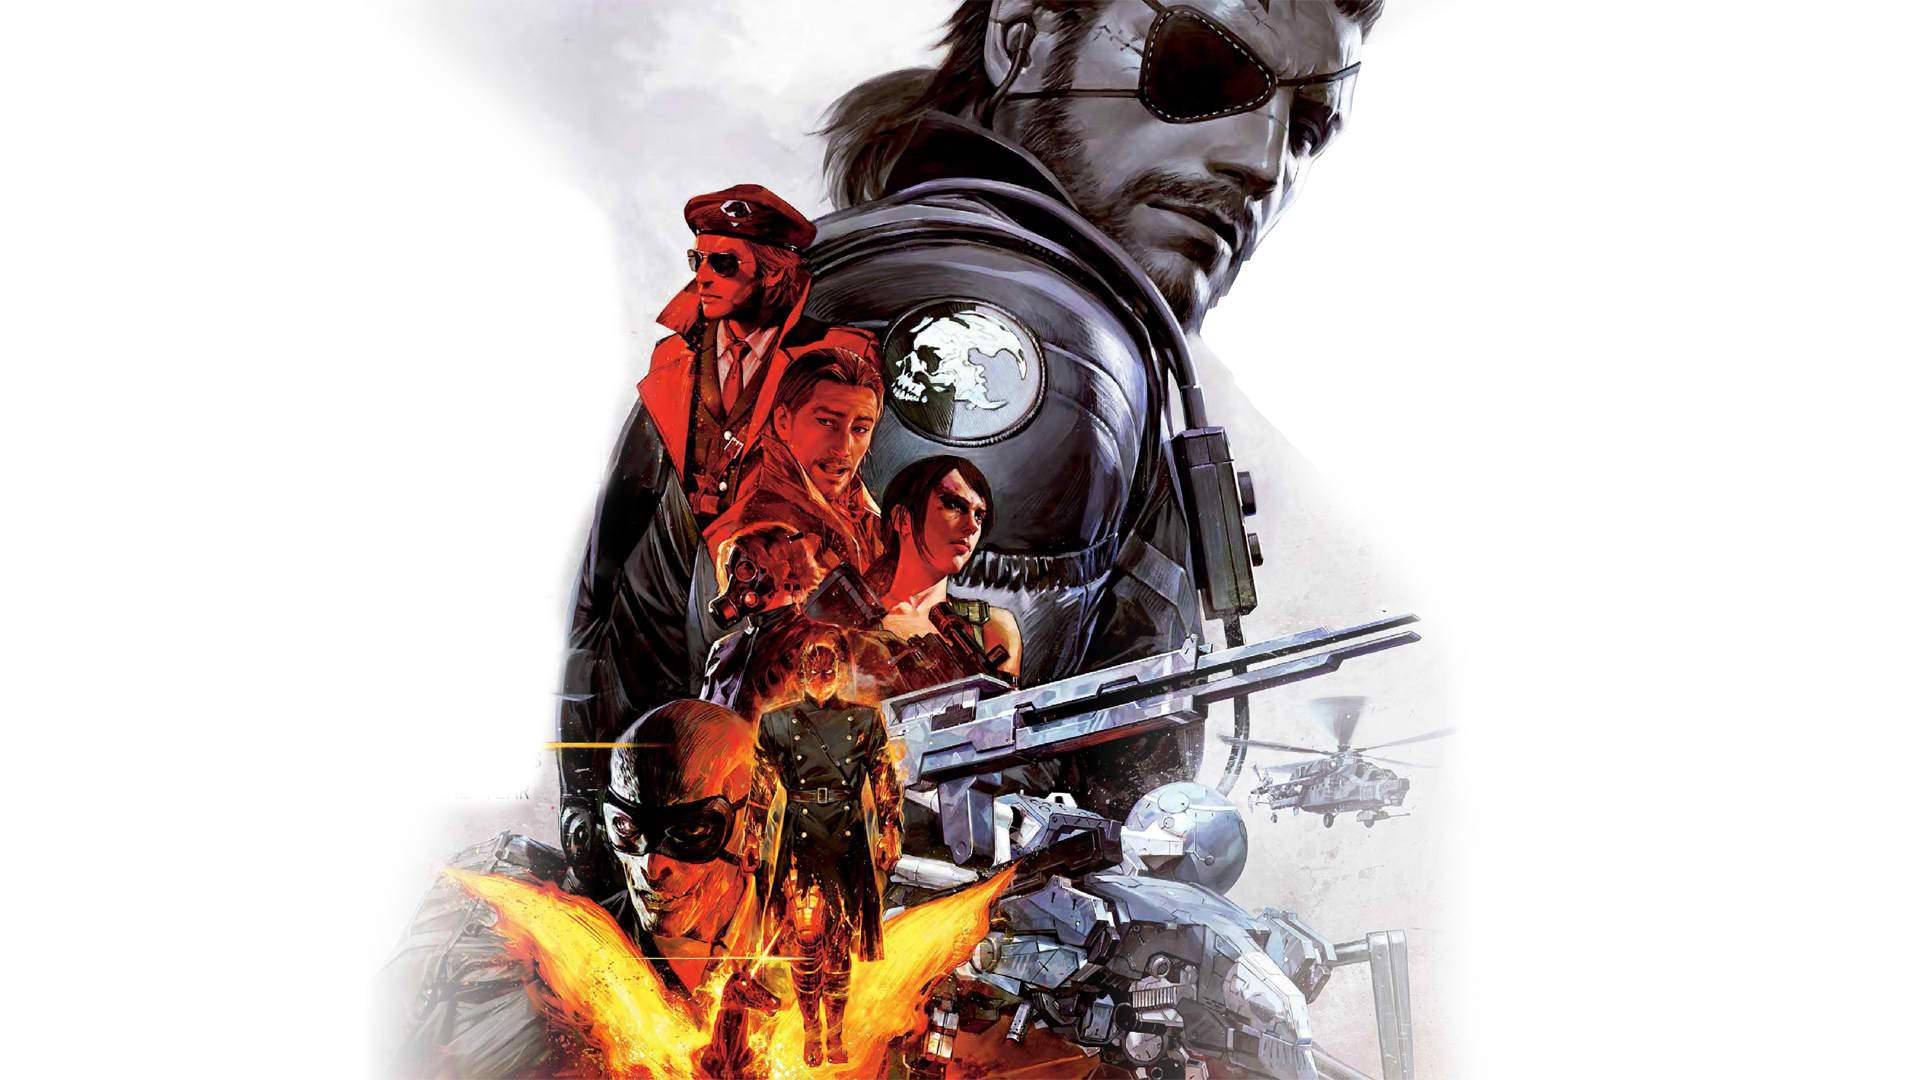 metal-gear-solid-v-the-phatnom-pain-3